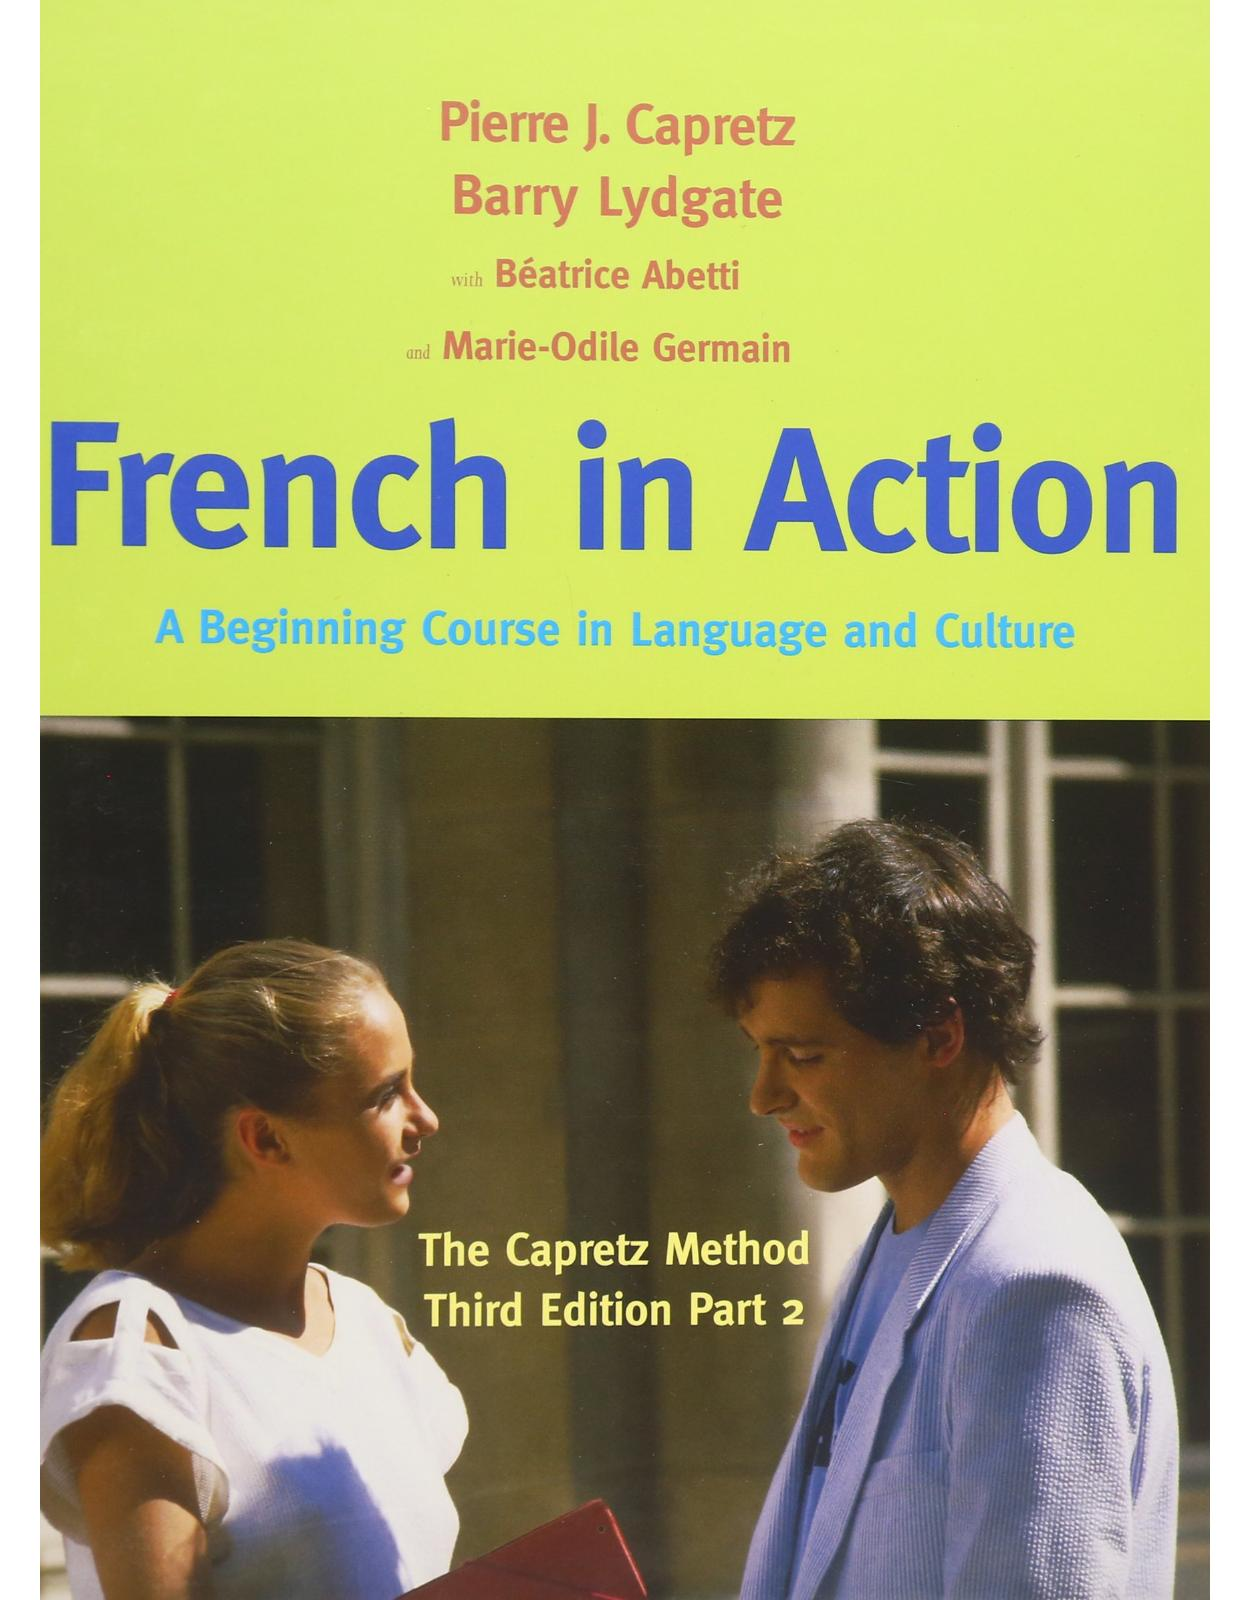 French in Action, Textbook, Part 2. A Beginning Course in Language and Culture: The Capretz Method